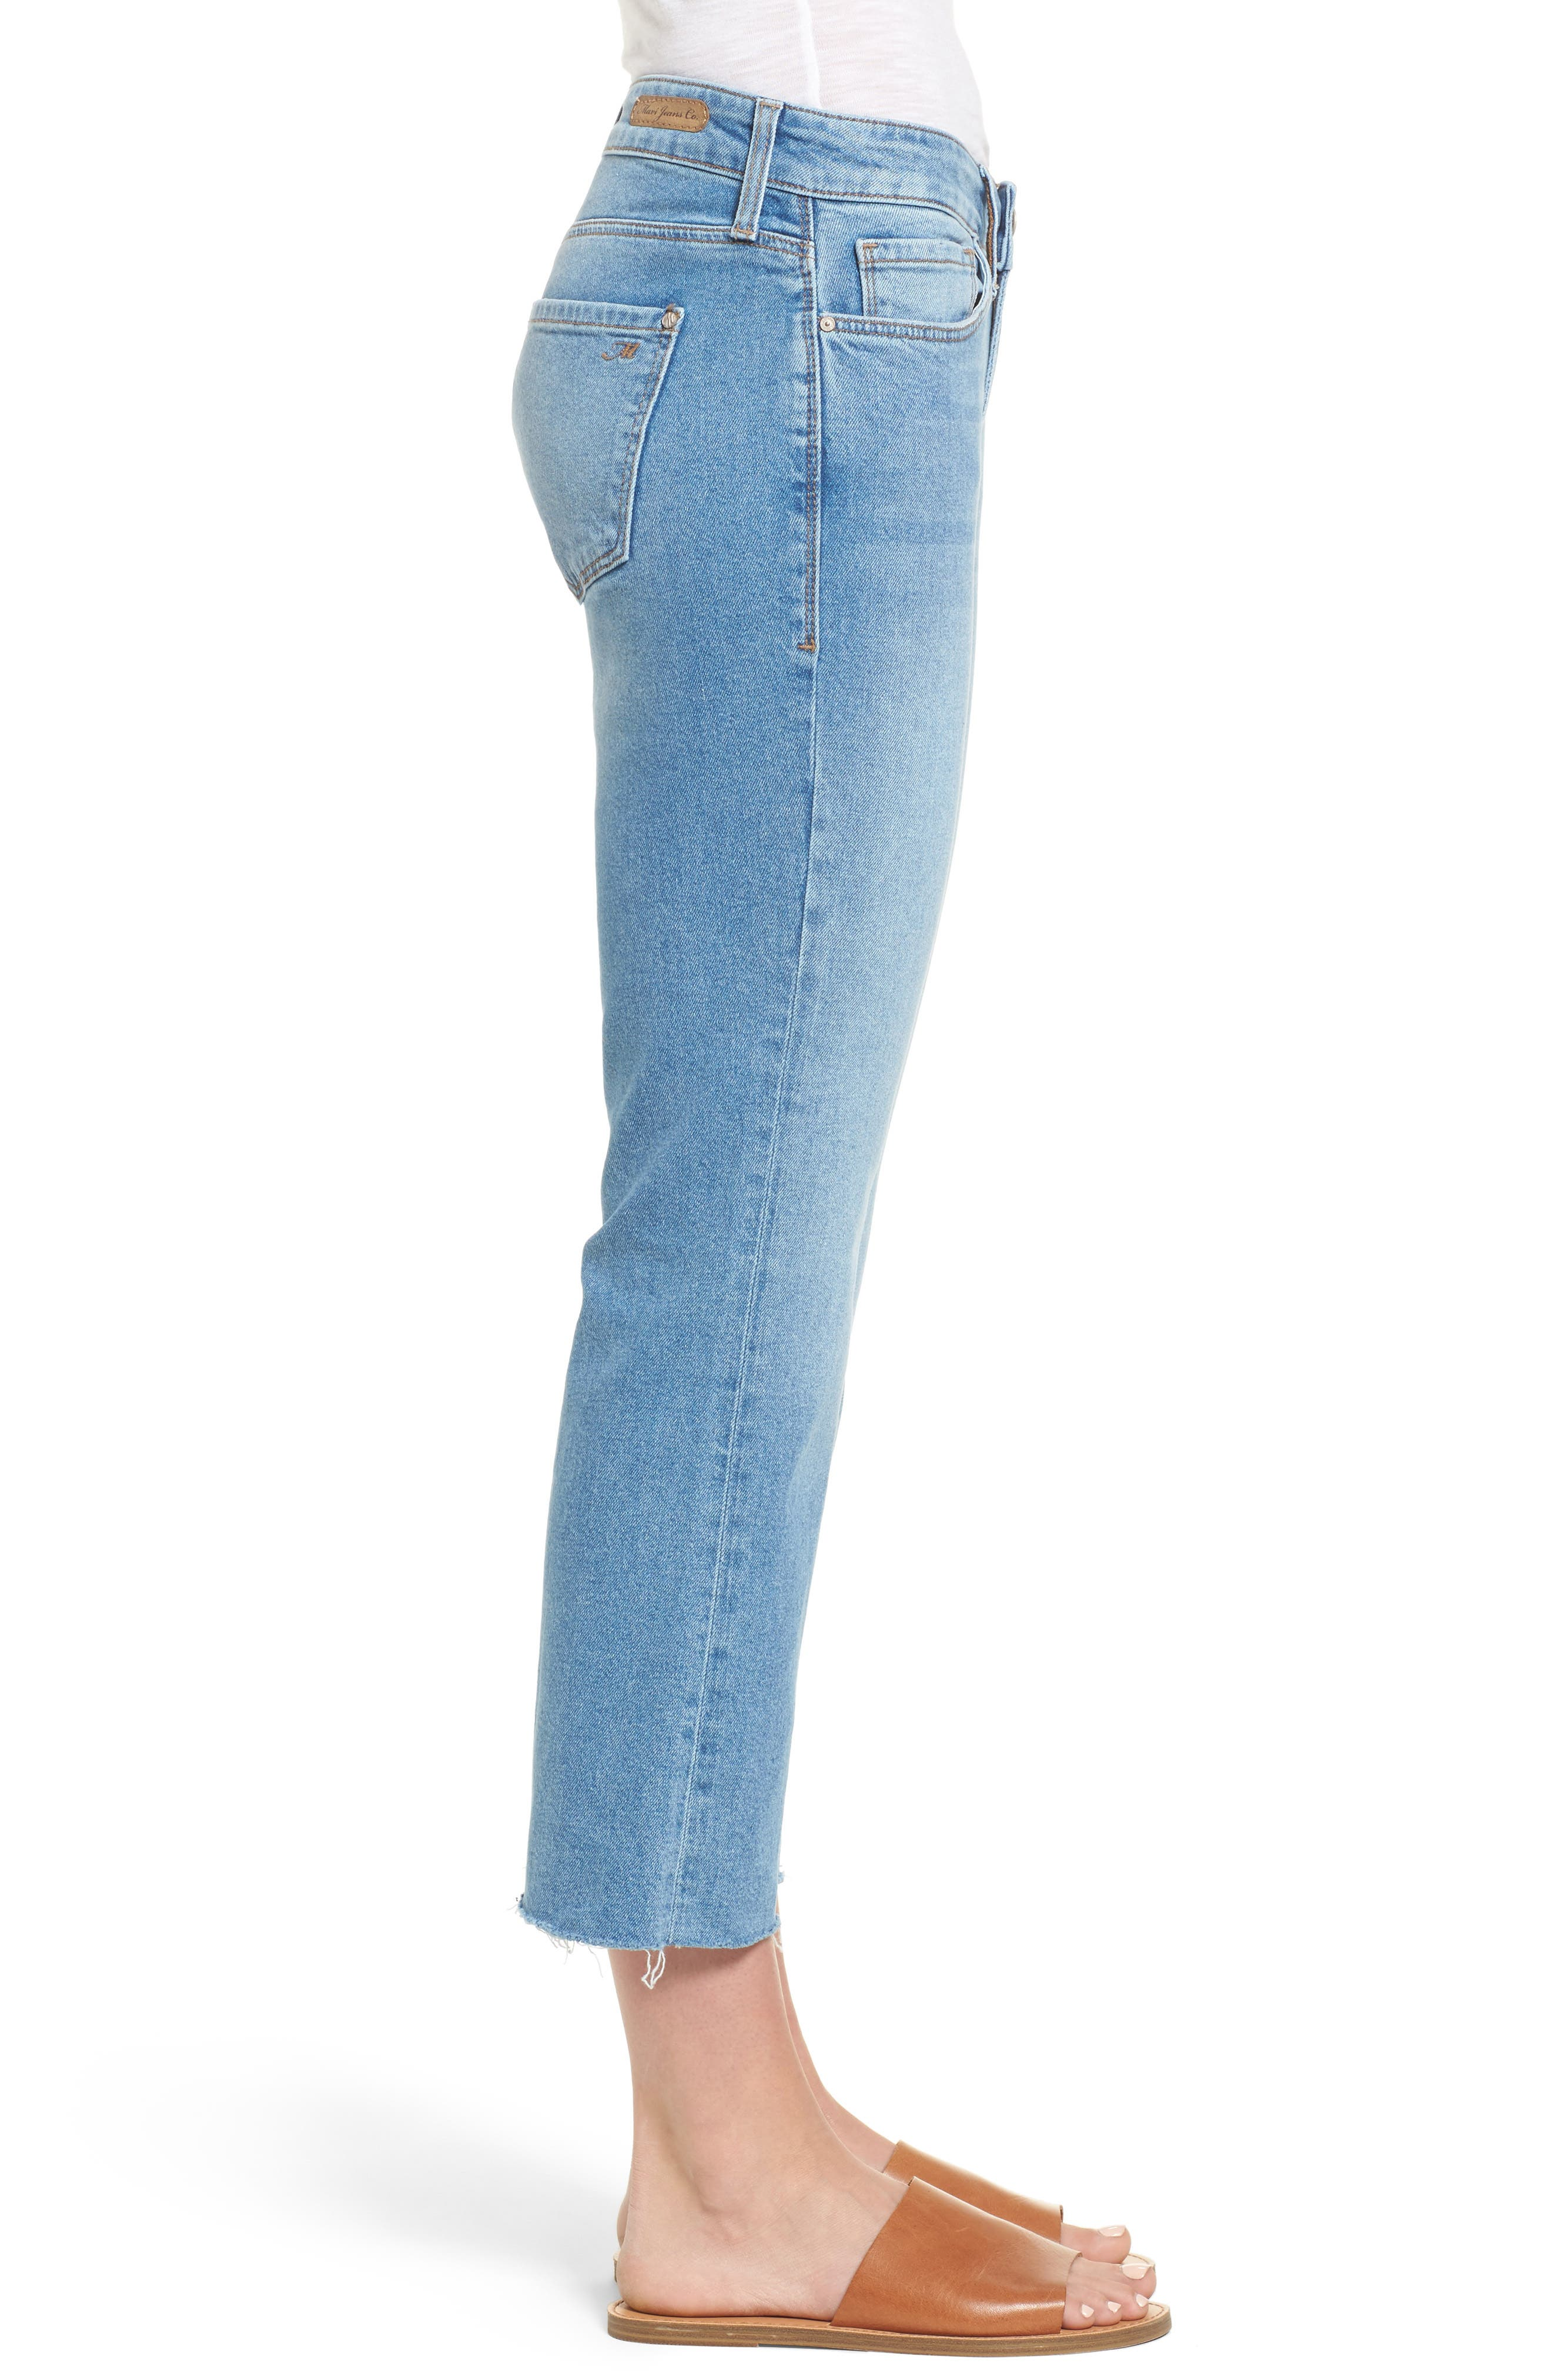 Anika Stretch Crop Jeans,                             Alternate thumbnail 3, color,                             Light Used Retro